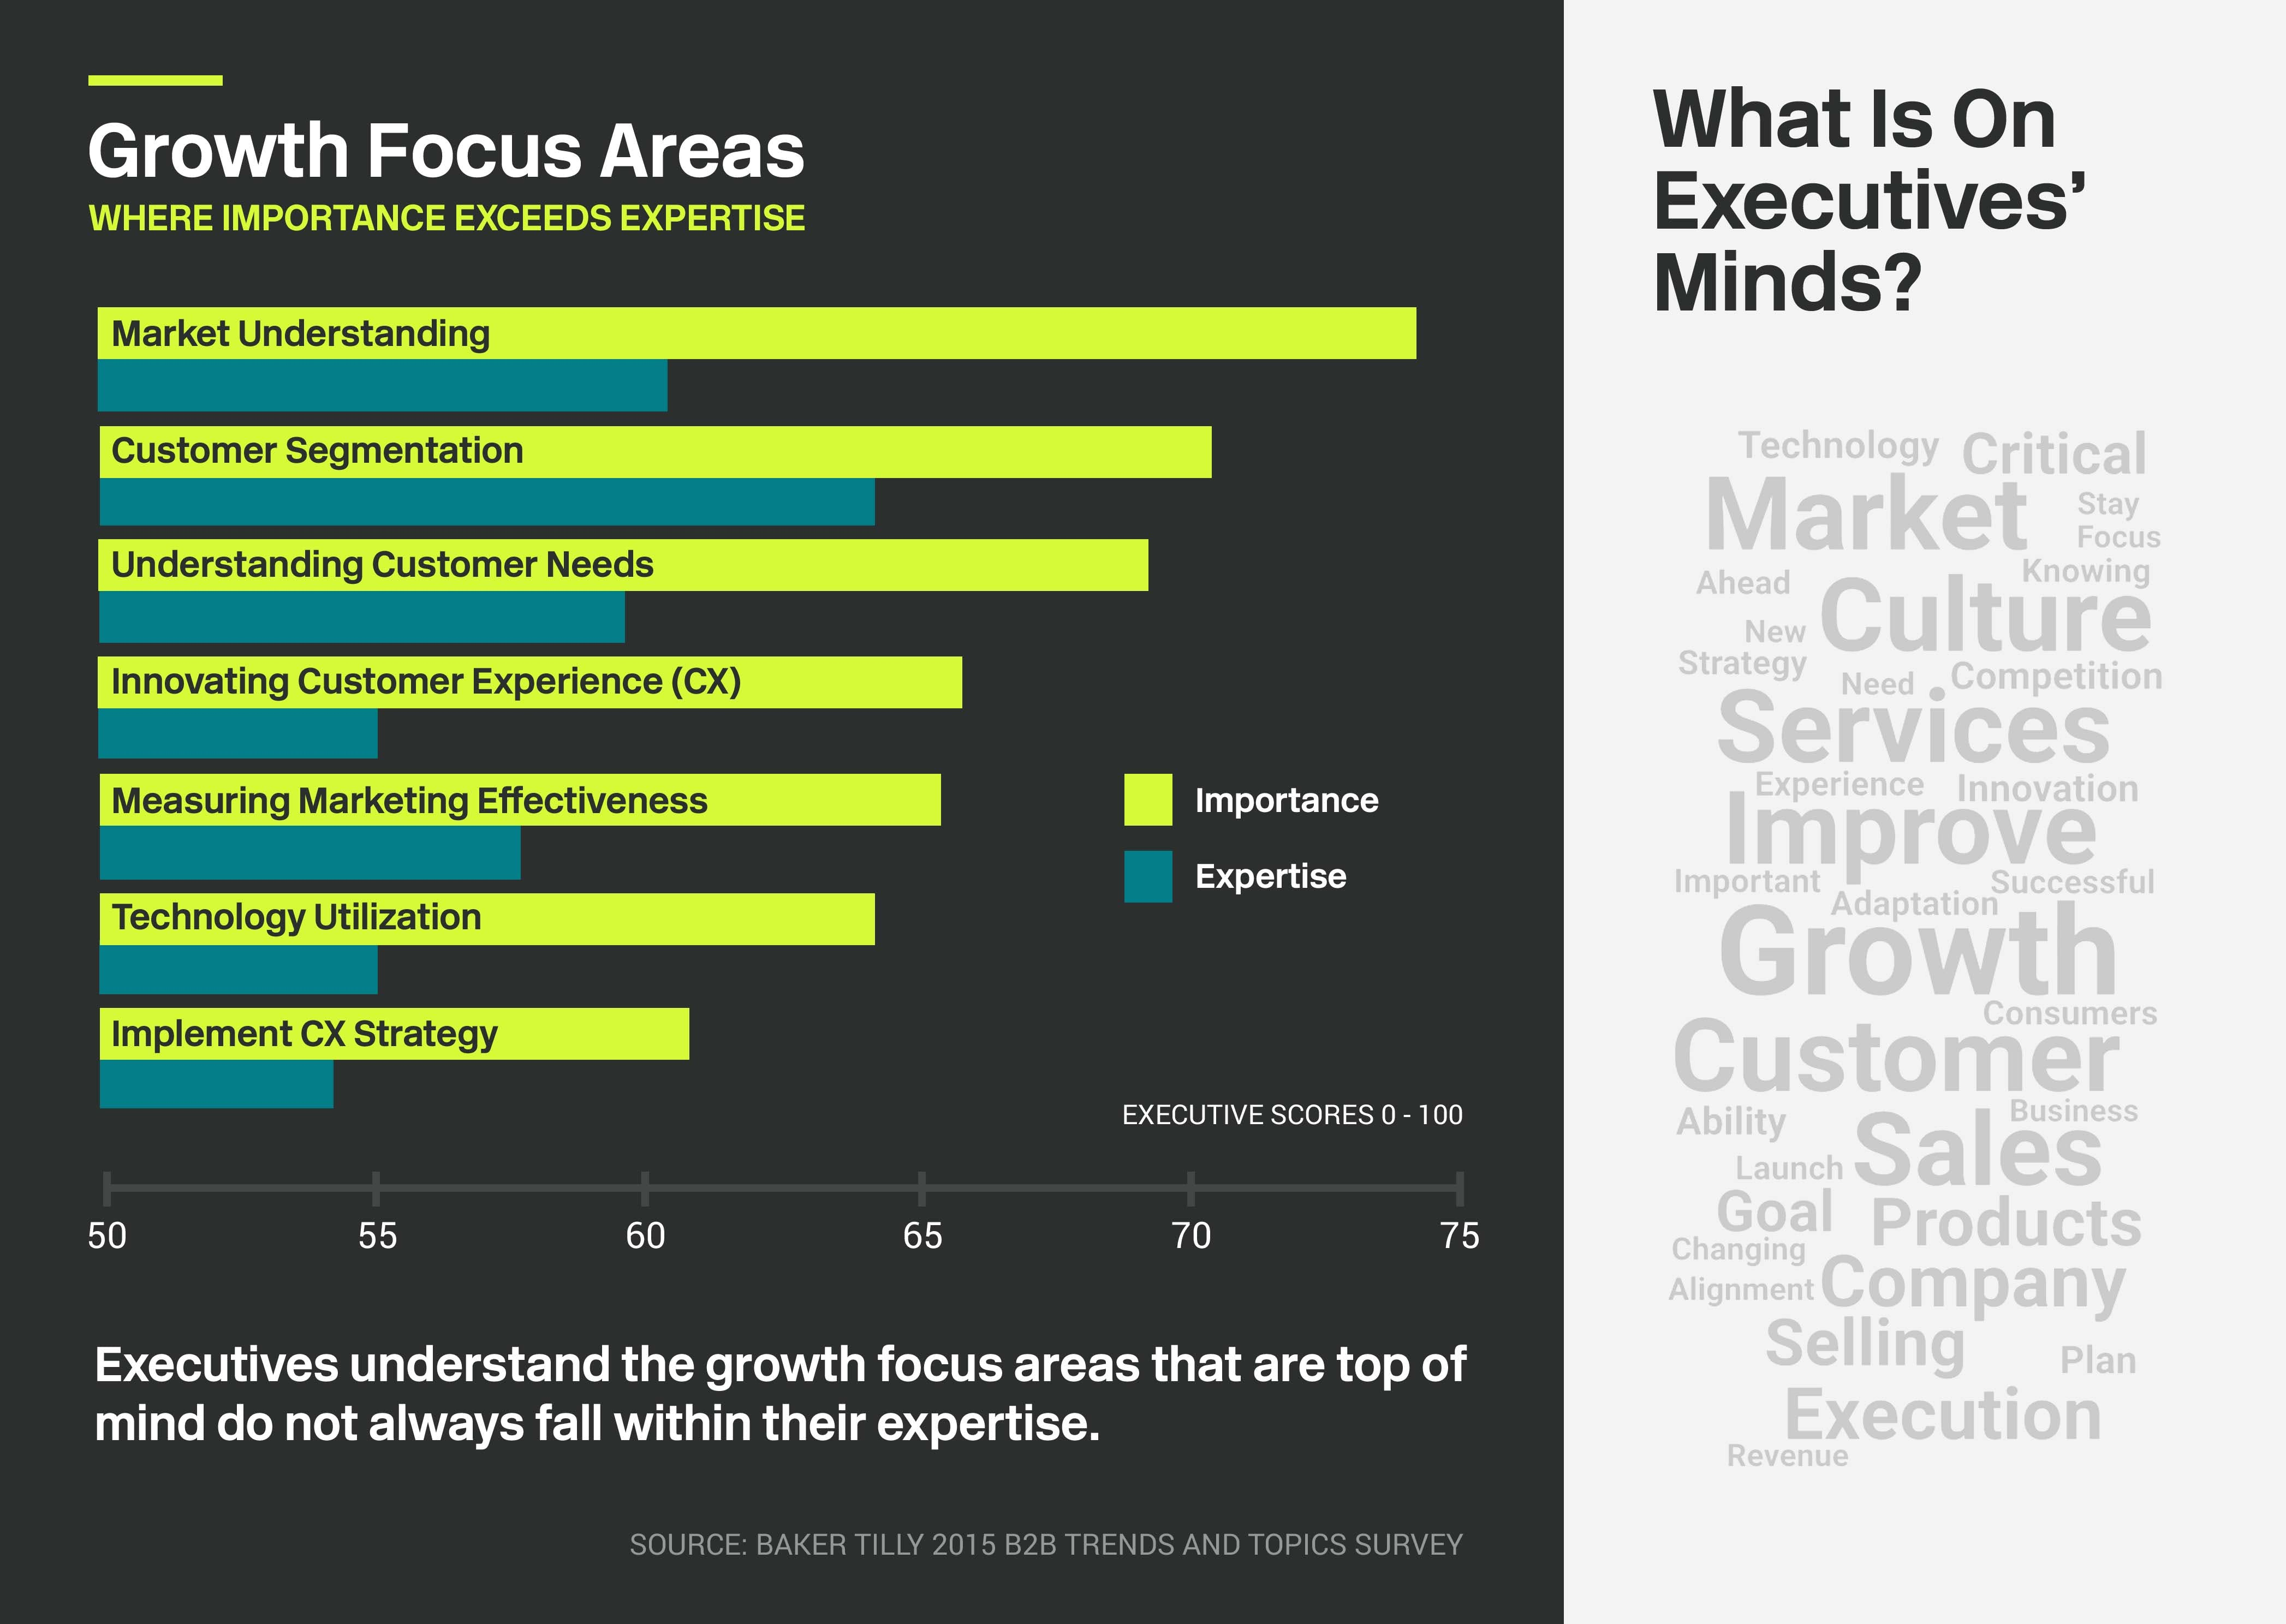 Growth focus areas and areas that are top of mind to executives